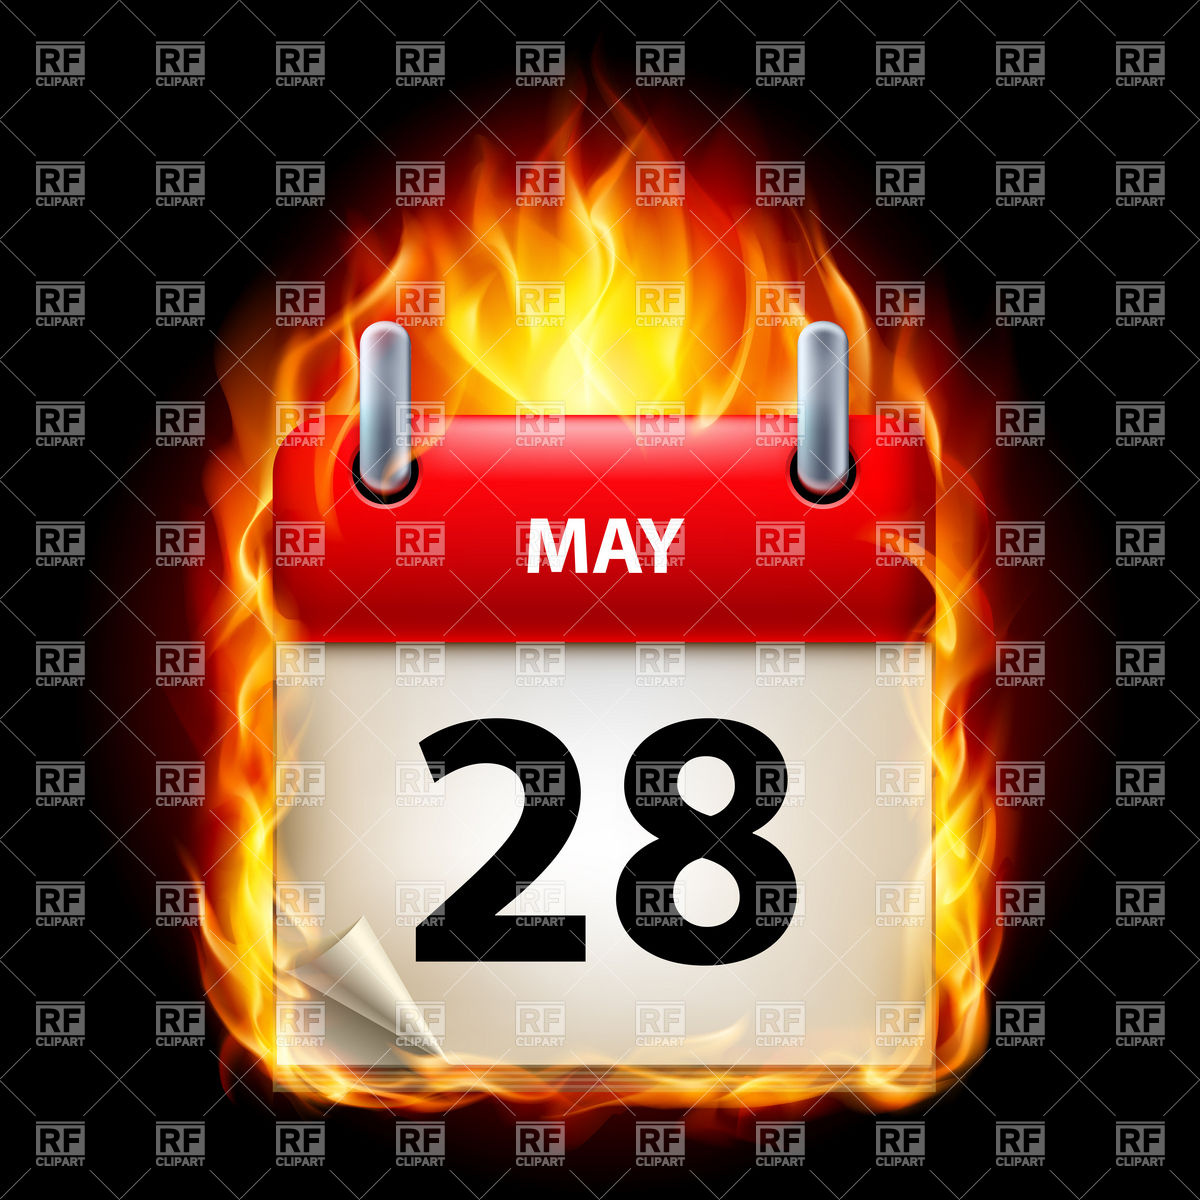 Calendar may 28 clipart transparent library Calendar may 28 clipart - ClipartFest transparent library